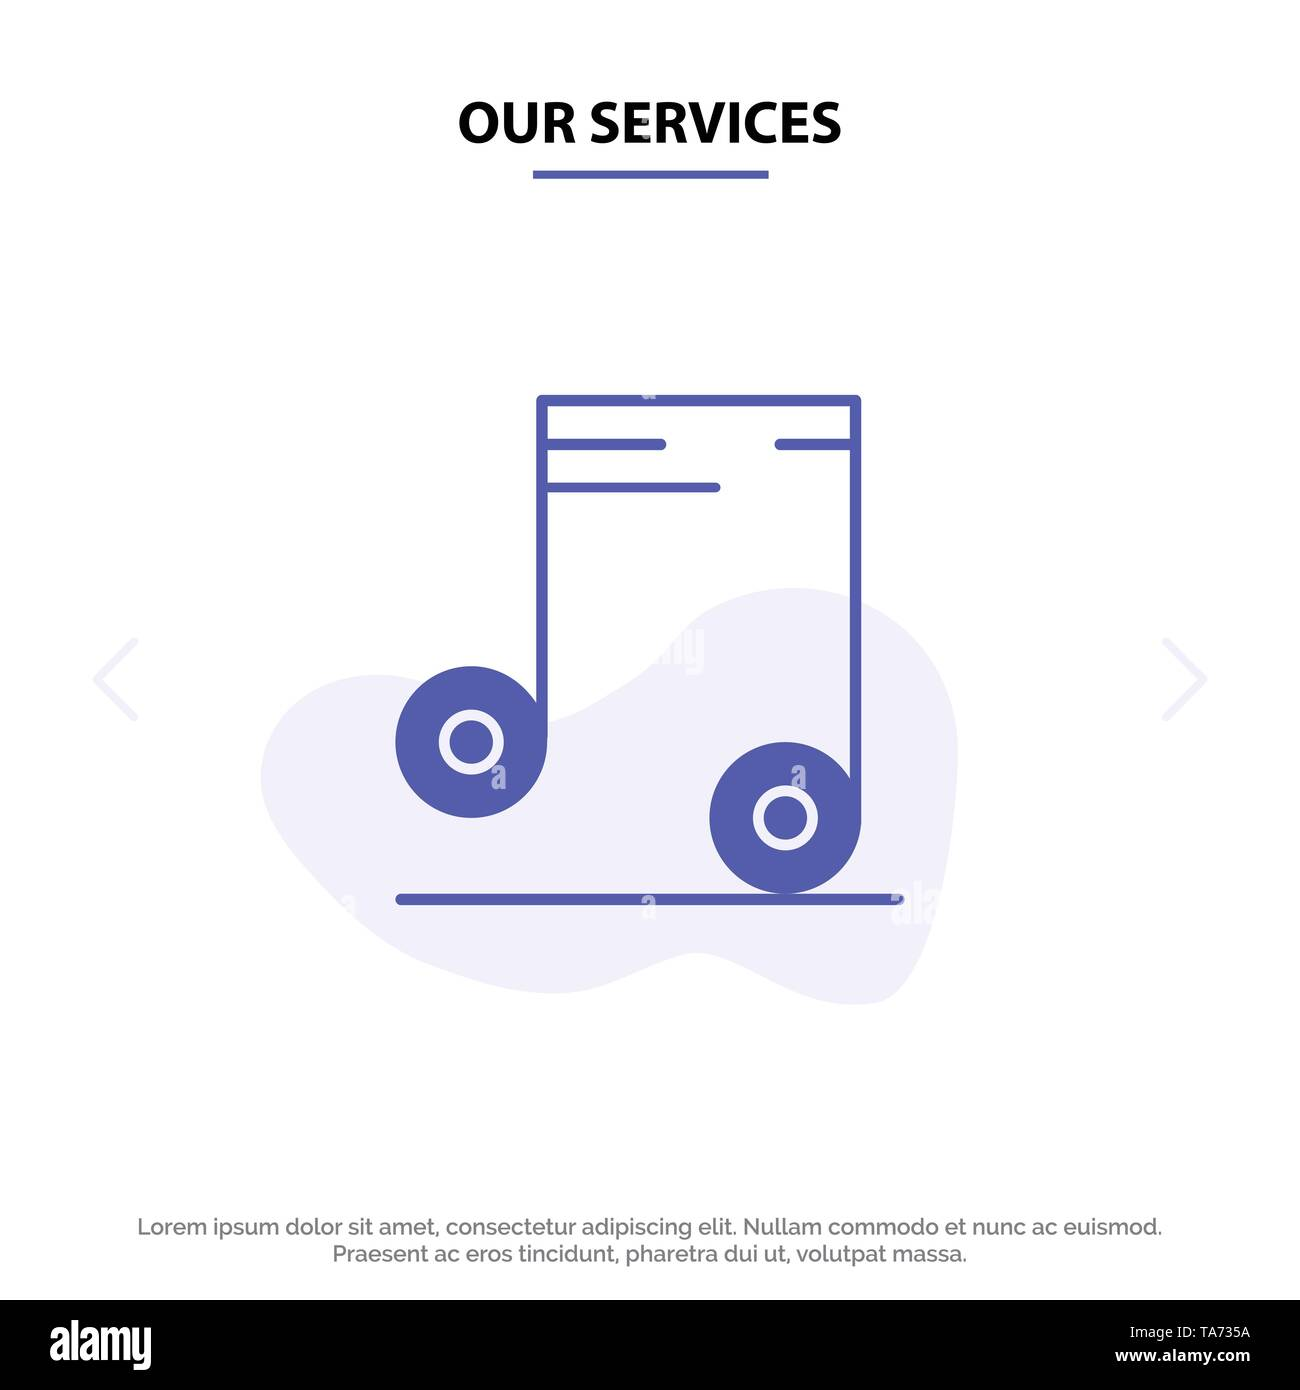 Our Services Music, Audio, School Solid Glyph Icon Web card Template - Stock Image